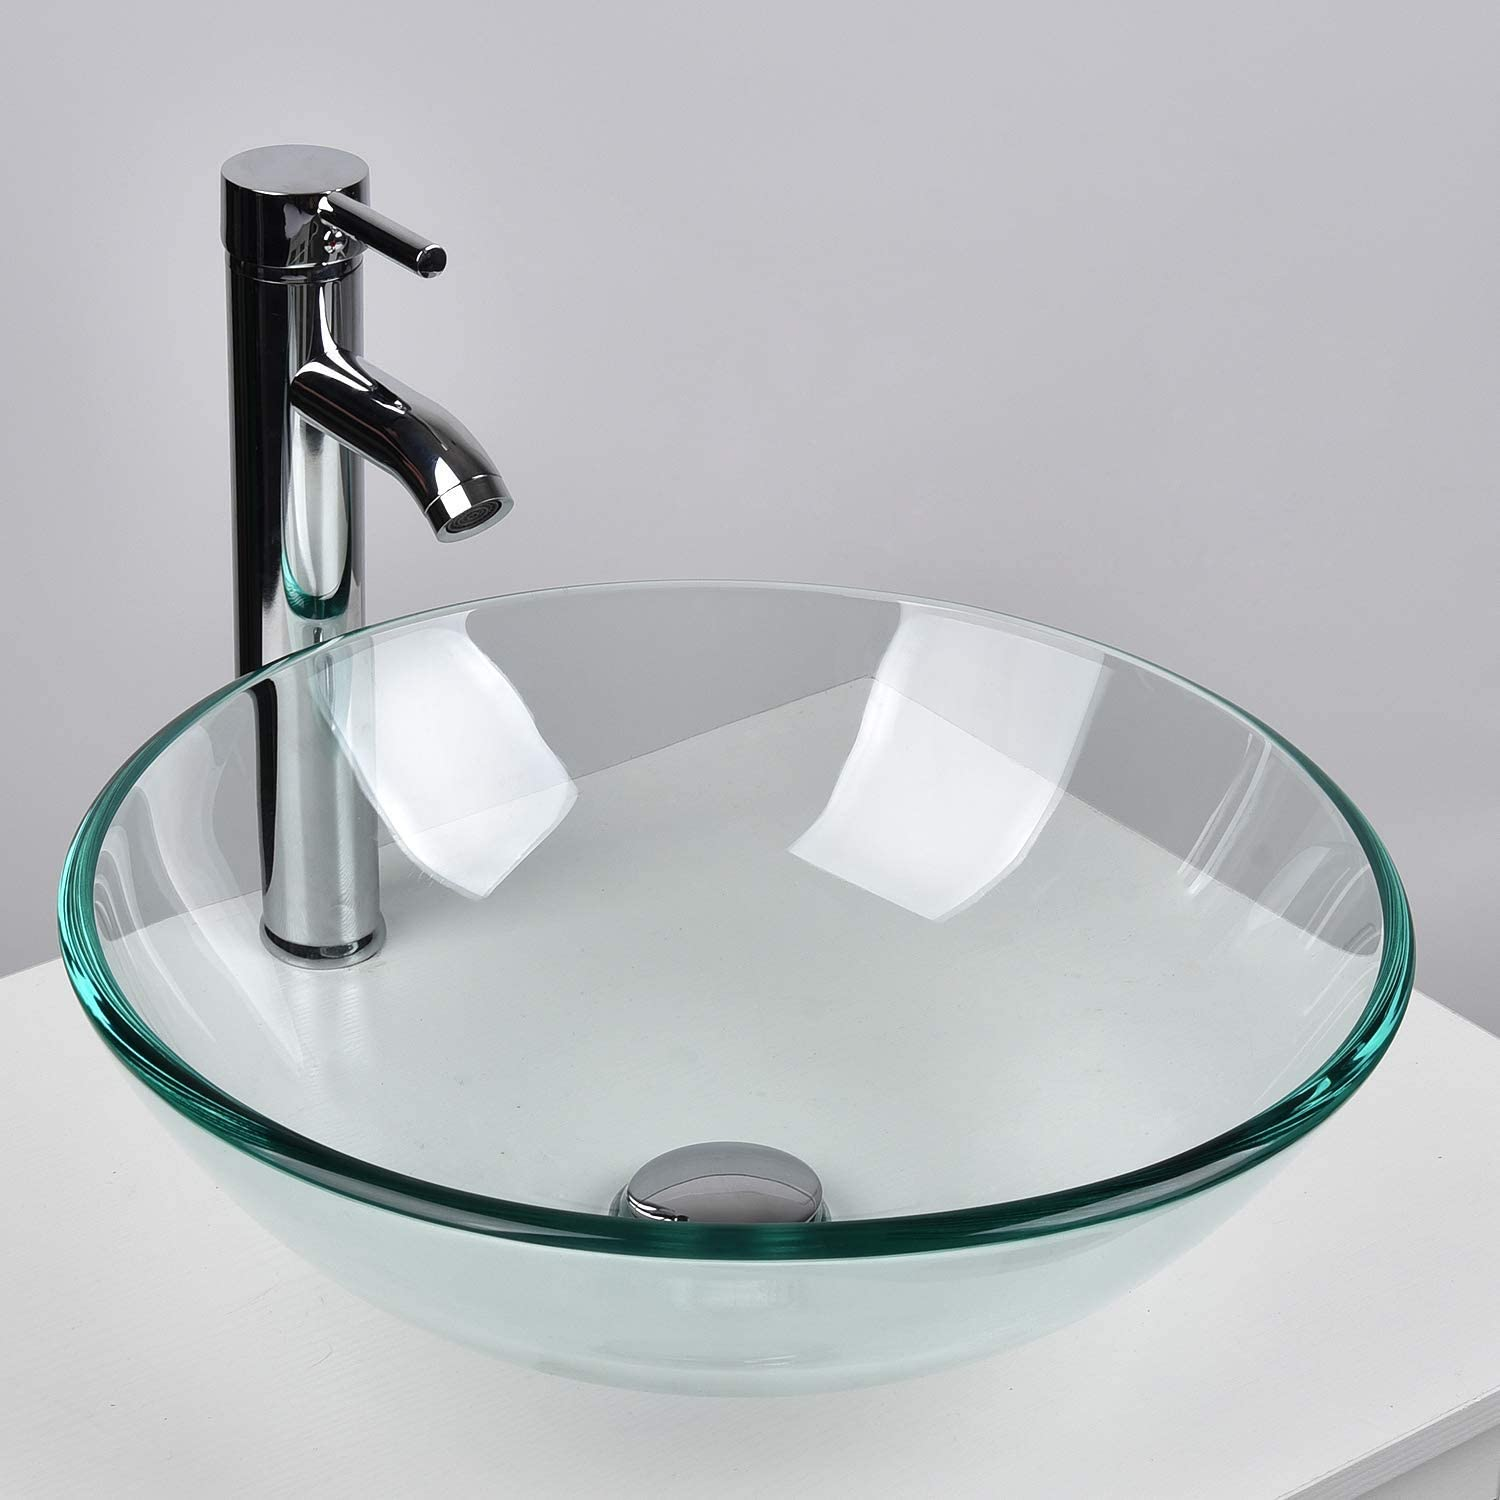 YOURLITE Tempered Glass Vessel Sink and Faucet Combo Round Countertop Basin for Bathroom Vanity Utility Sink above Counter